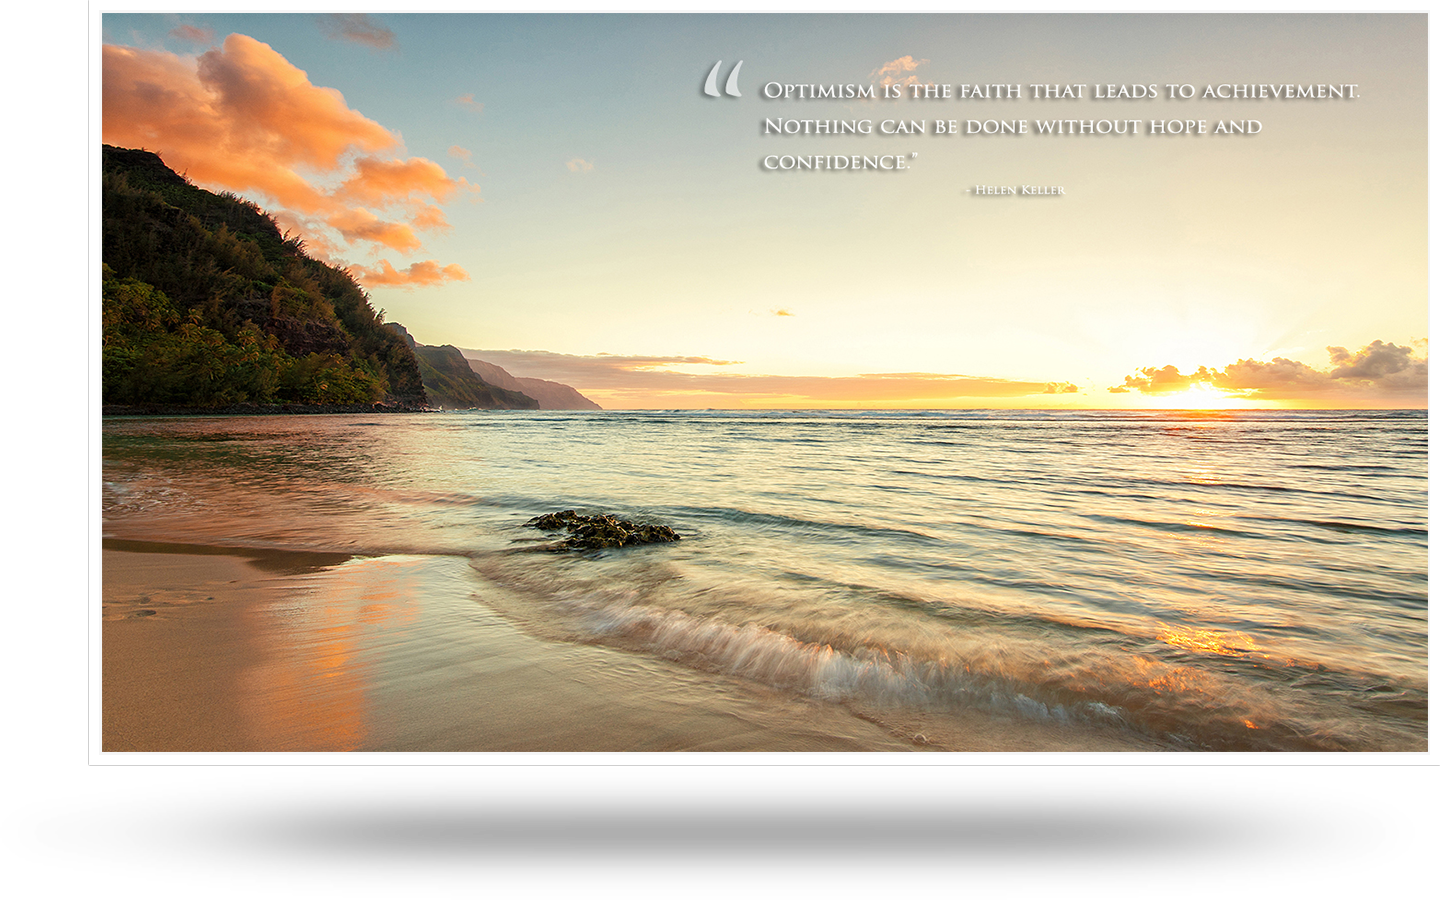 Free Wallpaper Friday 3 22 13 Efficient Life Skills Beach Wallpaper Sunset Wallpaper Hawaii Beaches